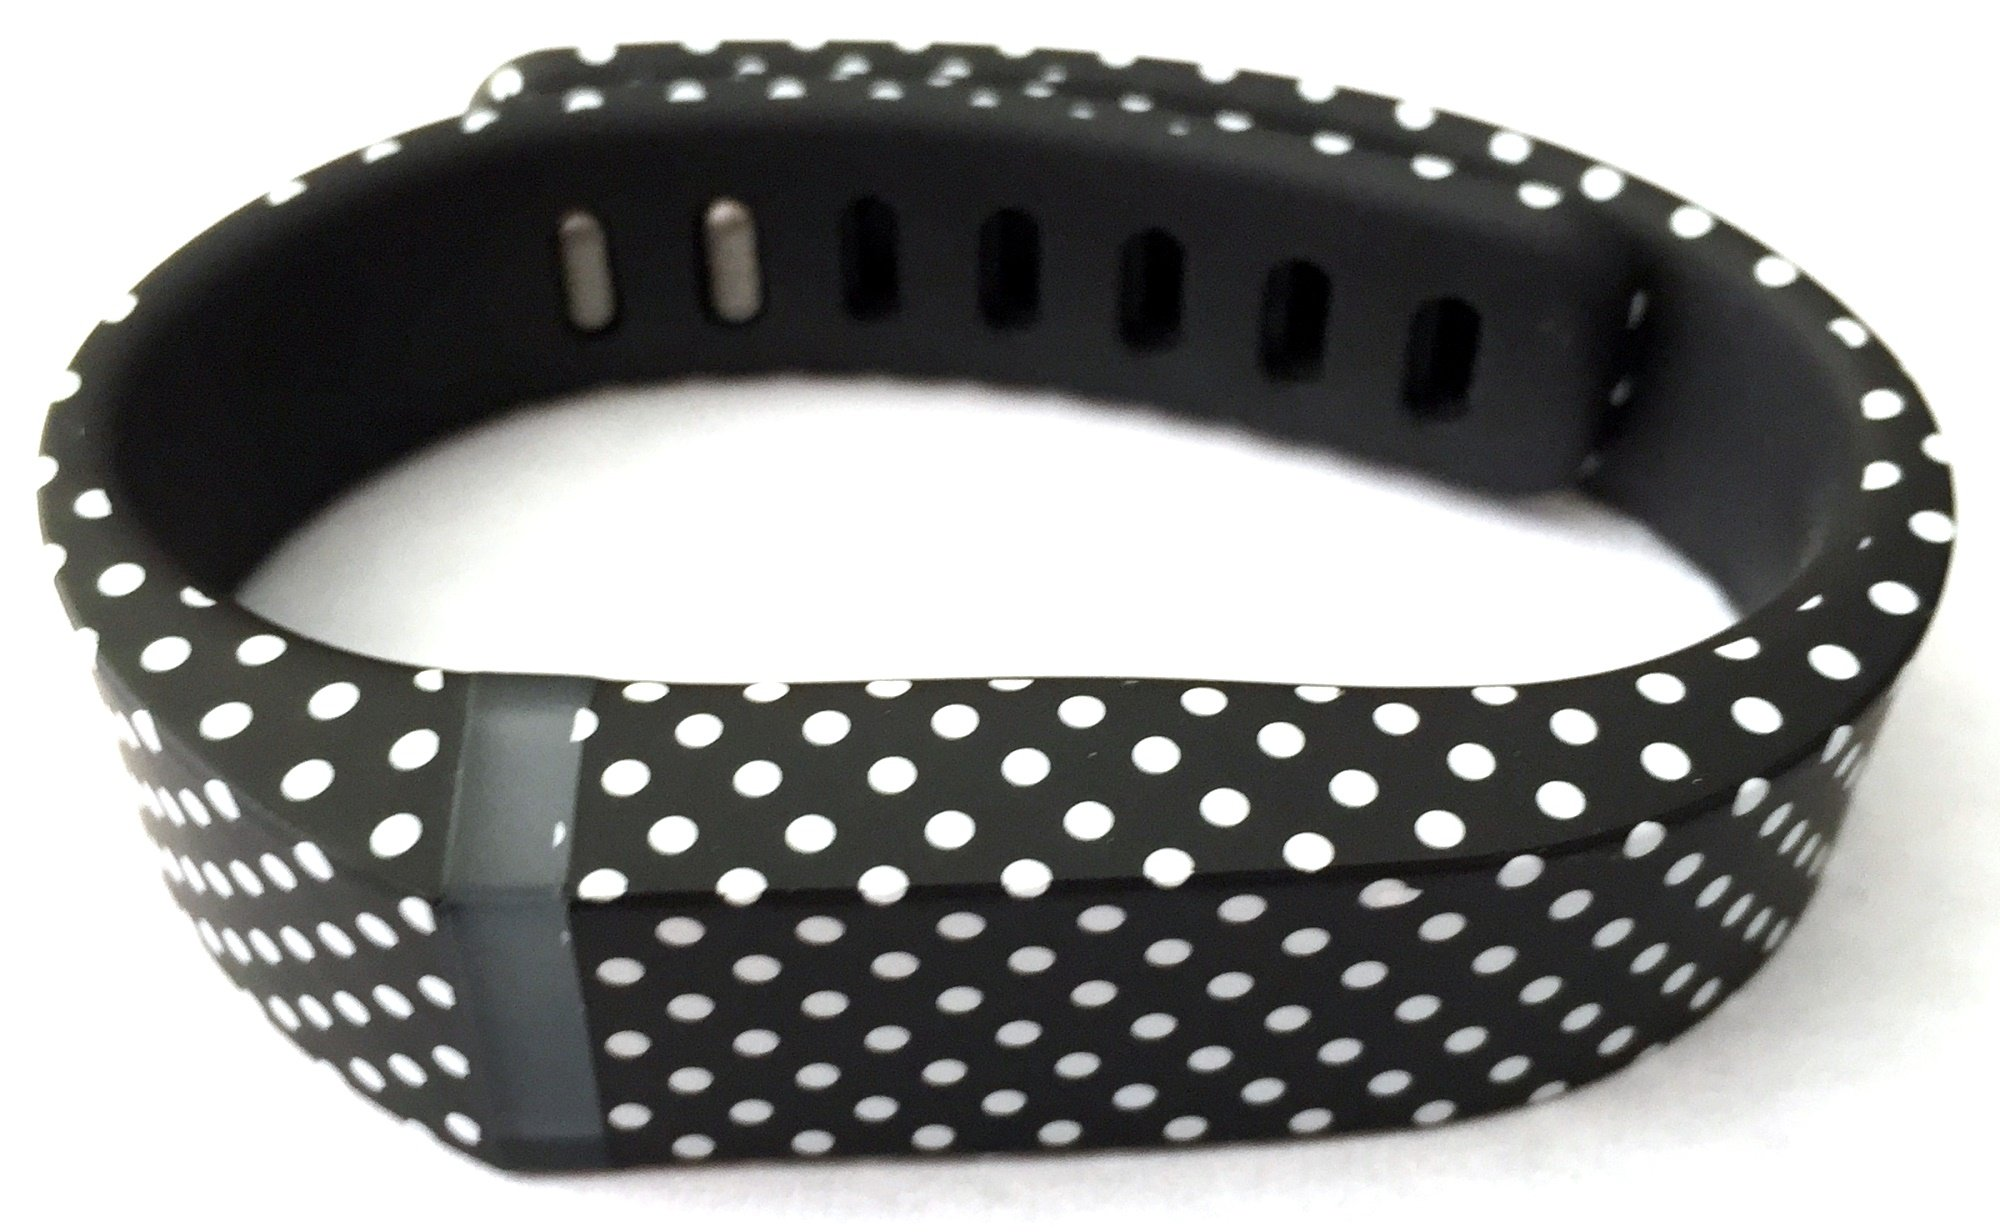 1pc Small S Black with White Dots Spots Replacement Band With Clasp for Fitbit FLEX Only /No tracker/ Wireless Activity Bracelet Sport Wristband Fit Bit Flex Bracelet Sport Arm Band Armband